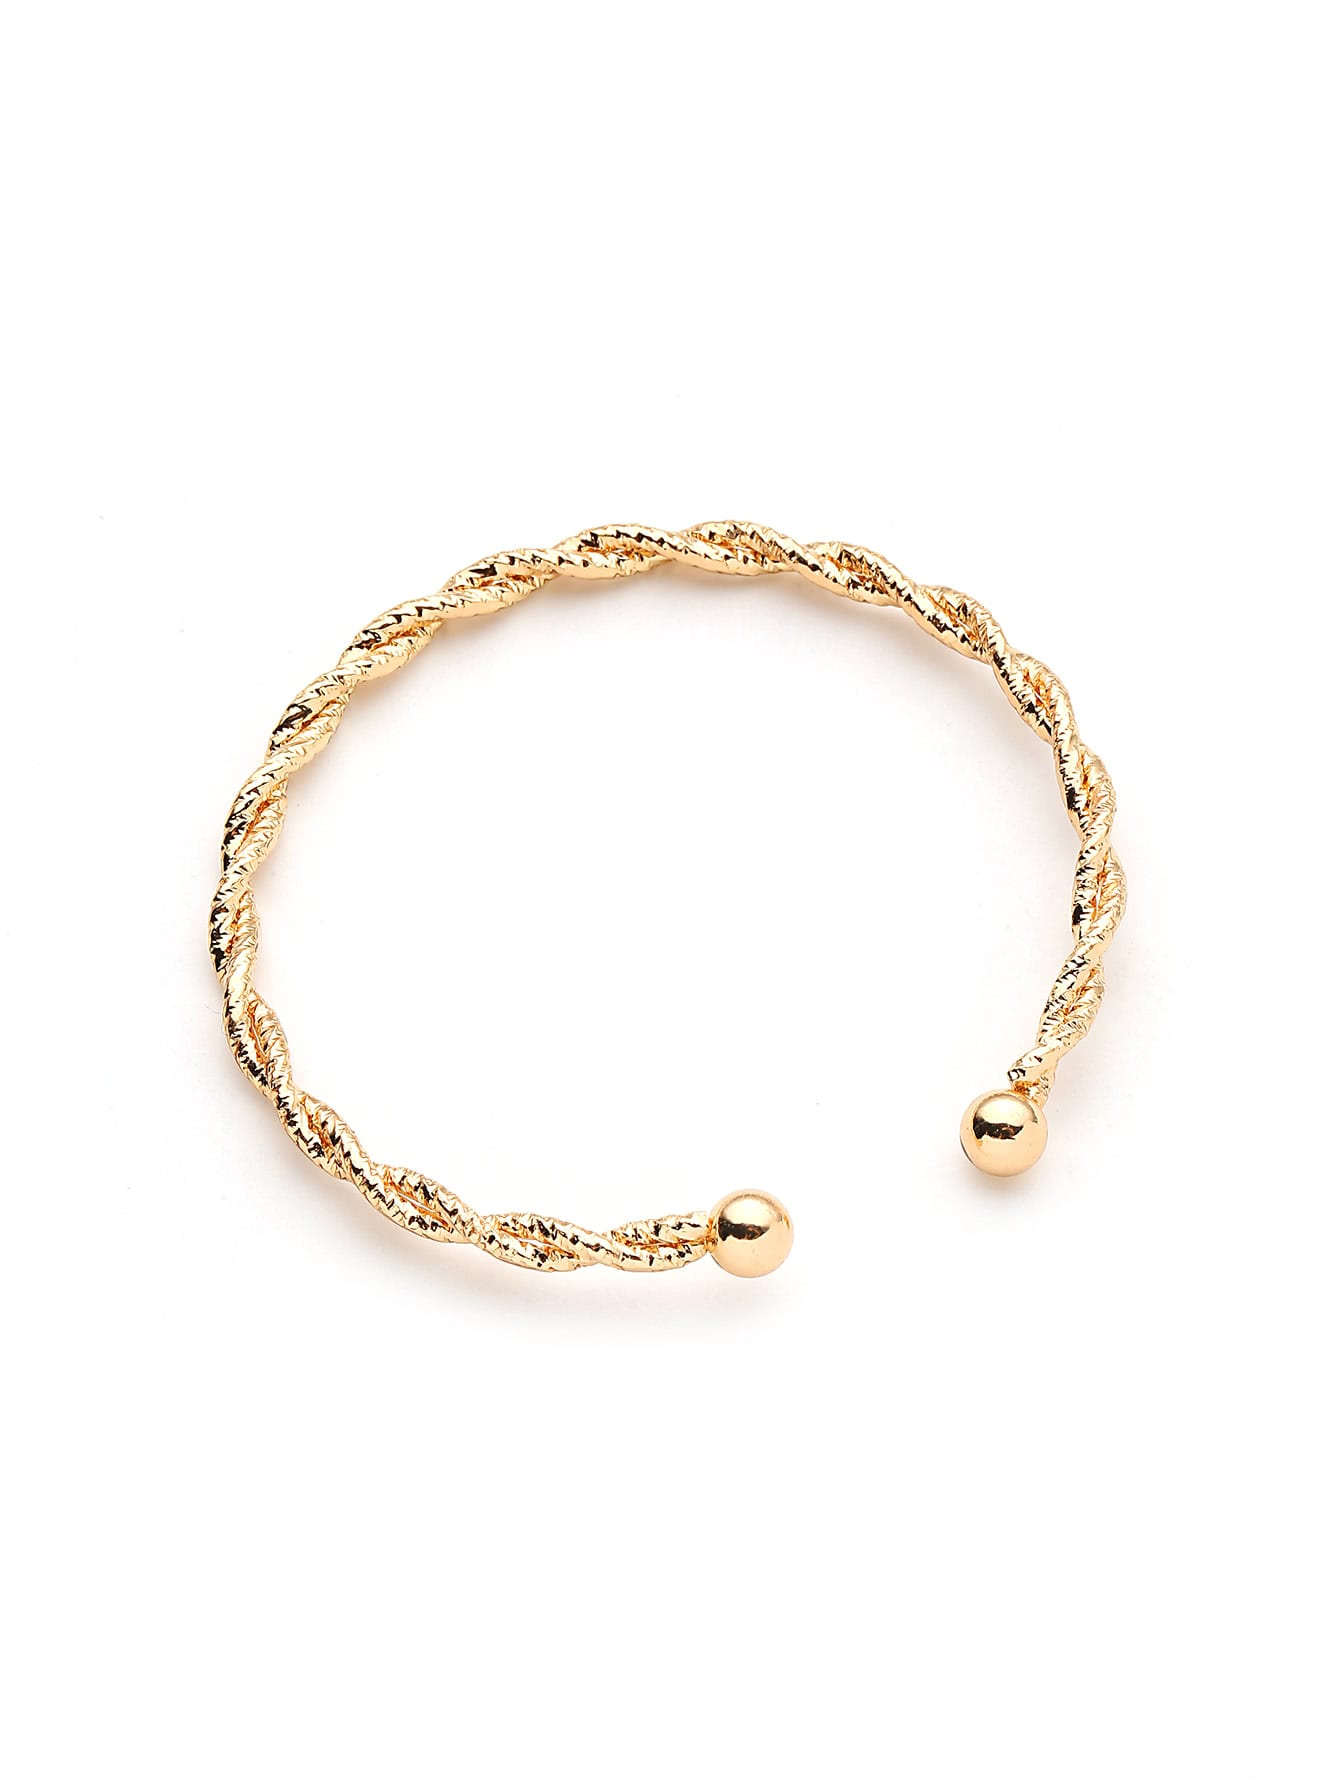 Women's Gold Plated Woven Design Bracelet